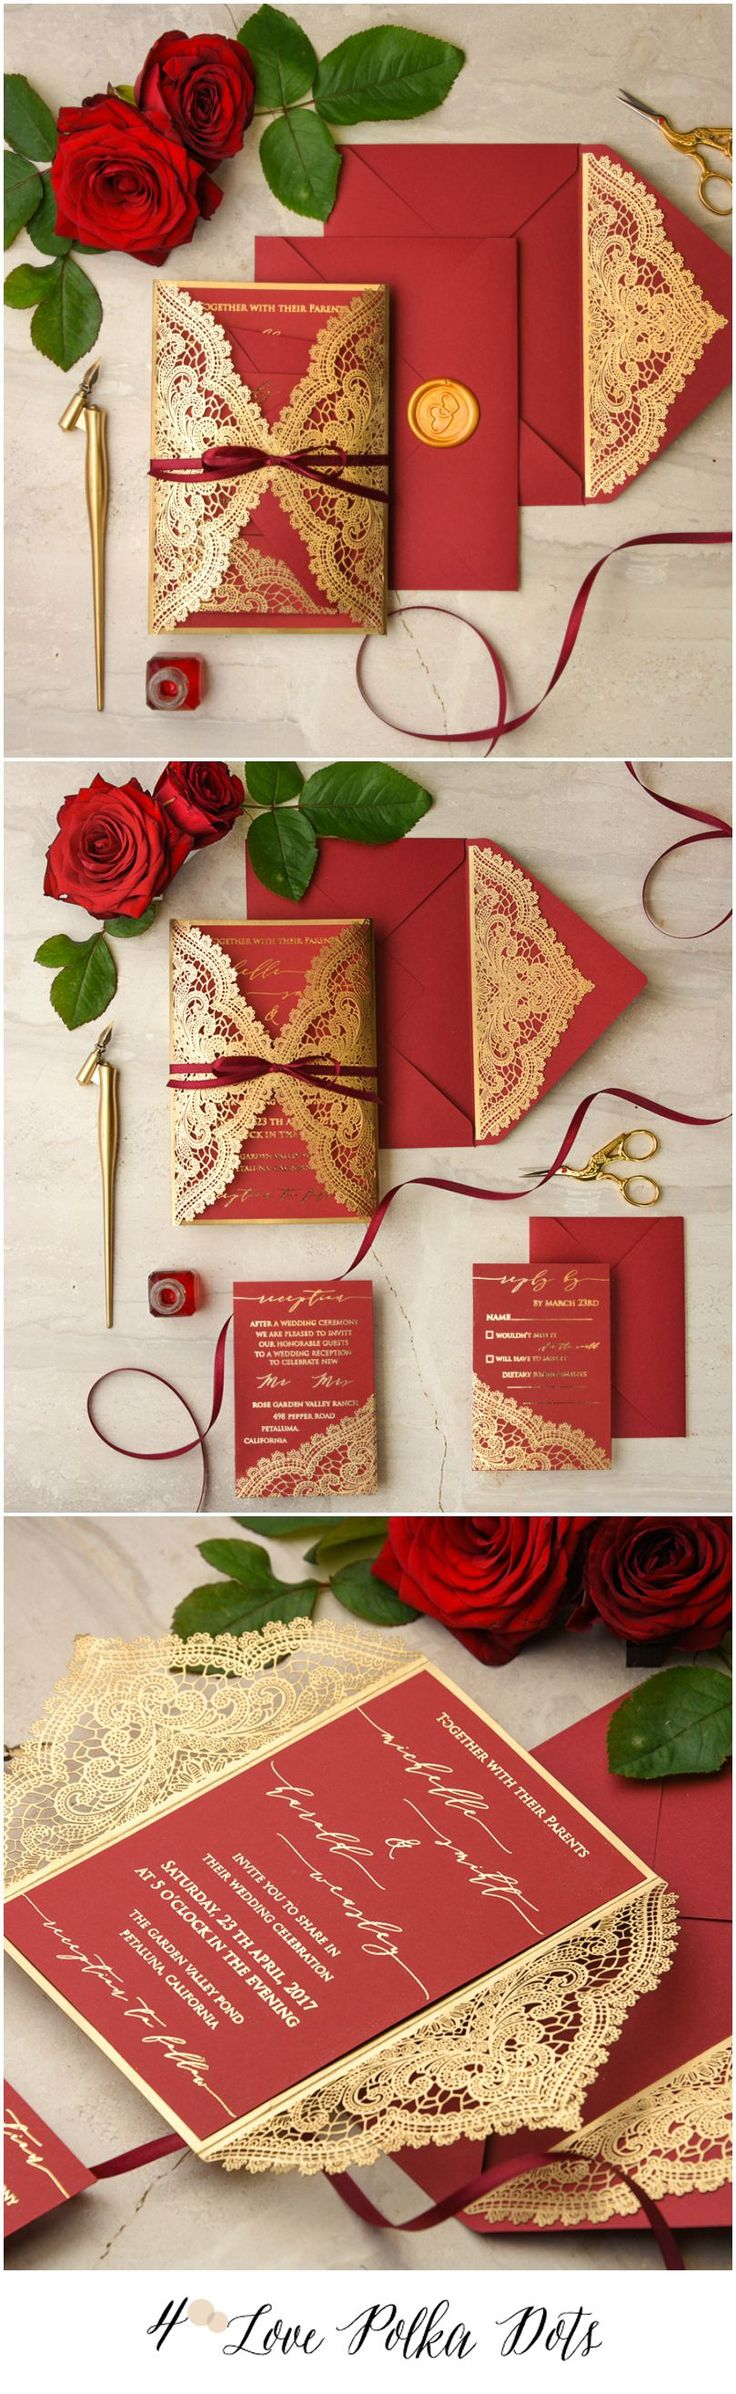 next day wedding invitations%0A Red  u     Gold laser cut lace romantic wedding invitations  sponsored